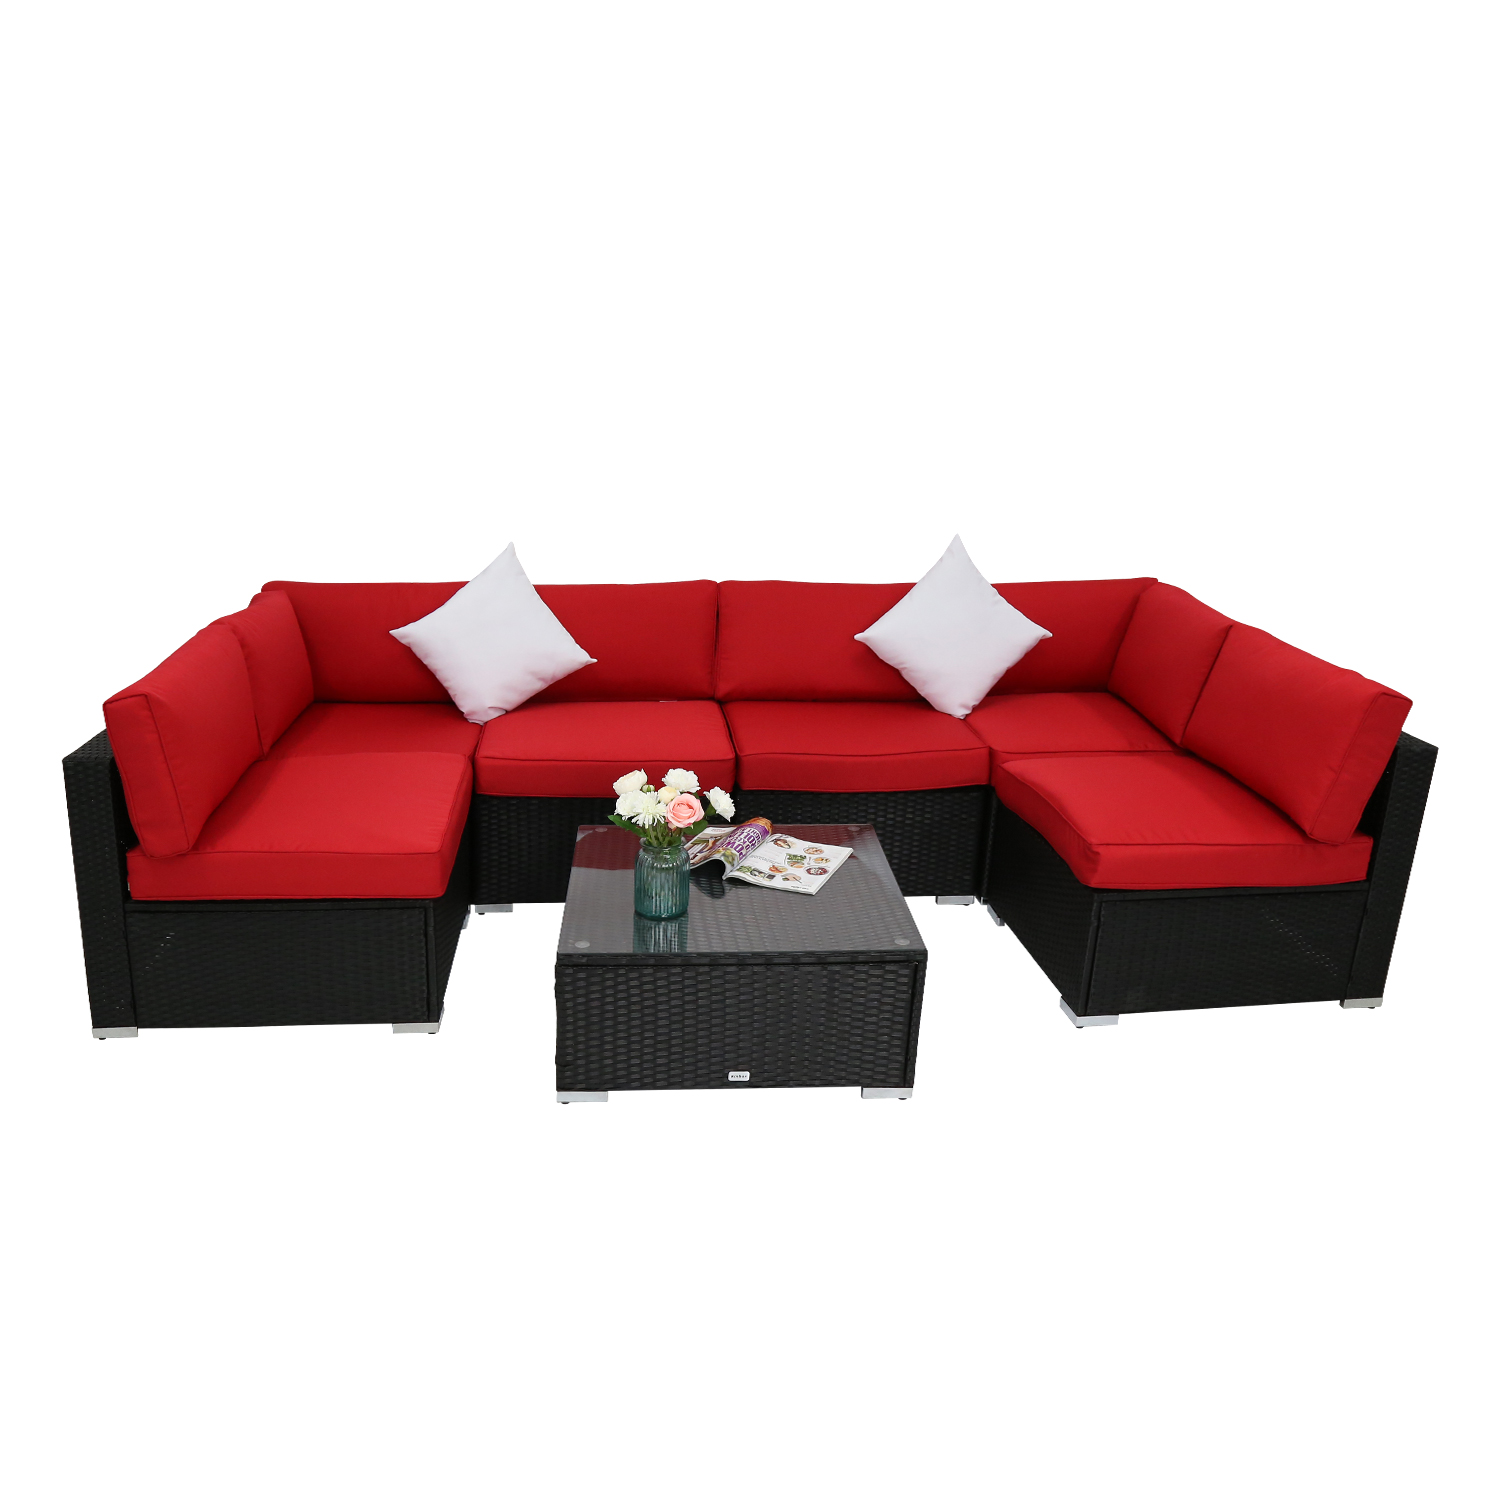 Groovy Details About Kinbor 7Pc Patio Wicker Sofa Set Garden Rattan Furniture Set Outdoor Red Cushion Inzonedesignstudio Interior Chair Design Inzonedesignstudiocom